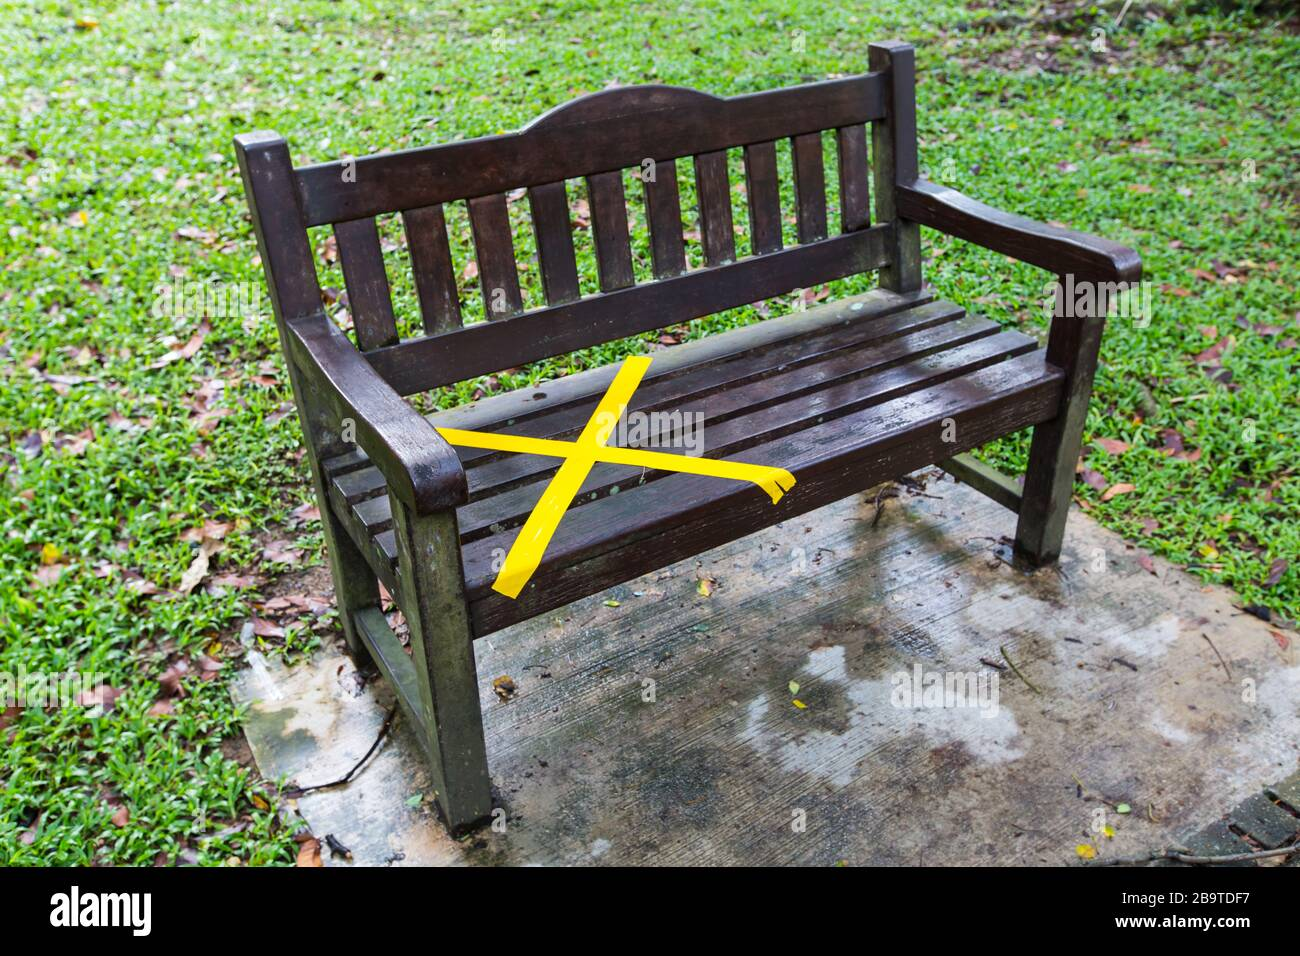 outdoor-sitting-bench-is-pasted-with-a-c